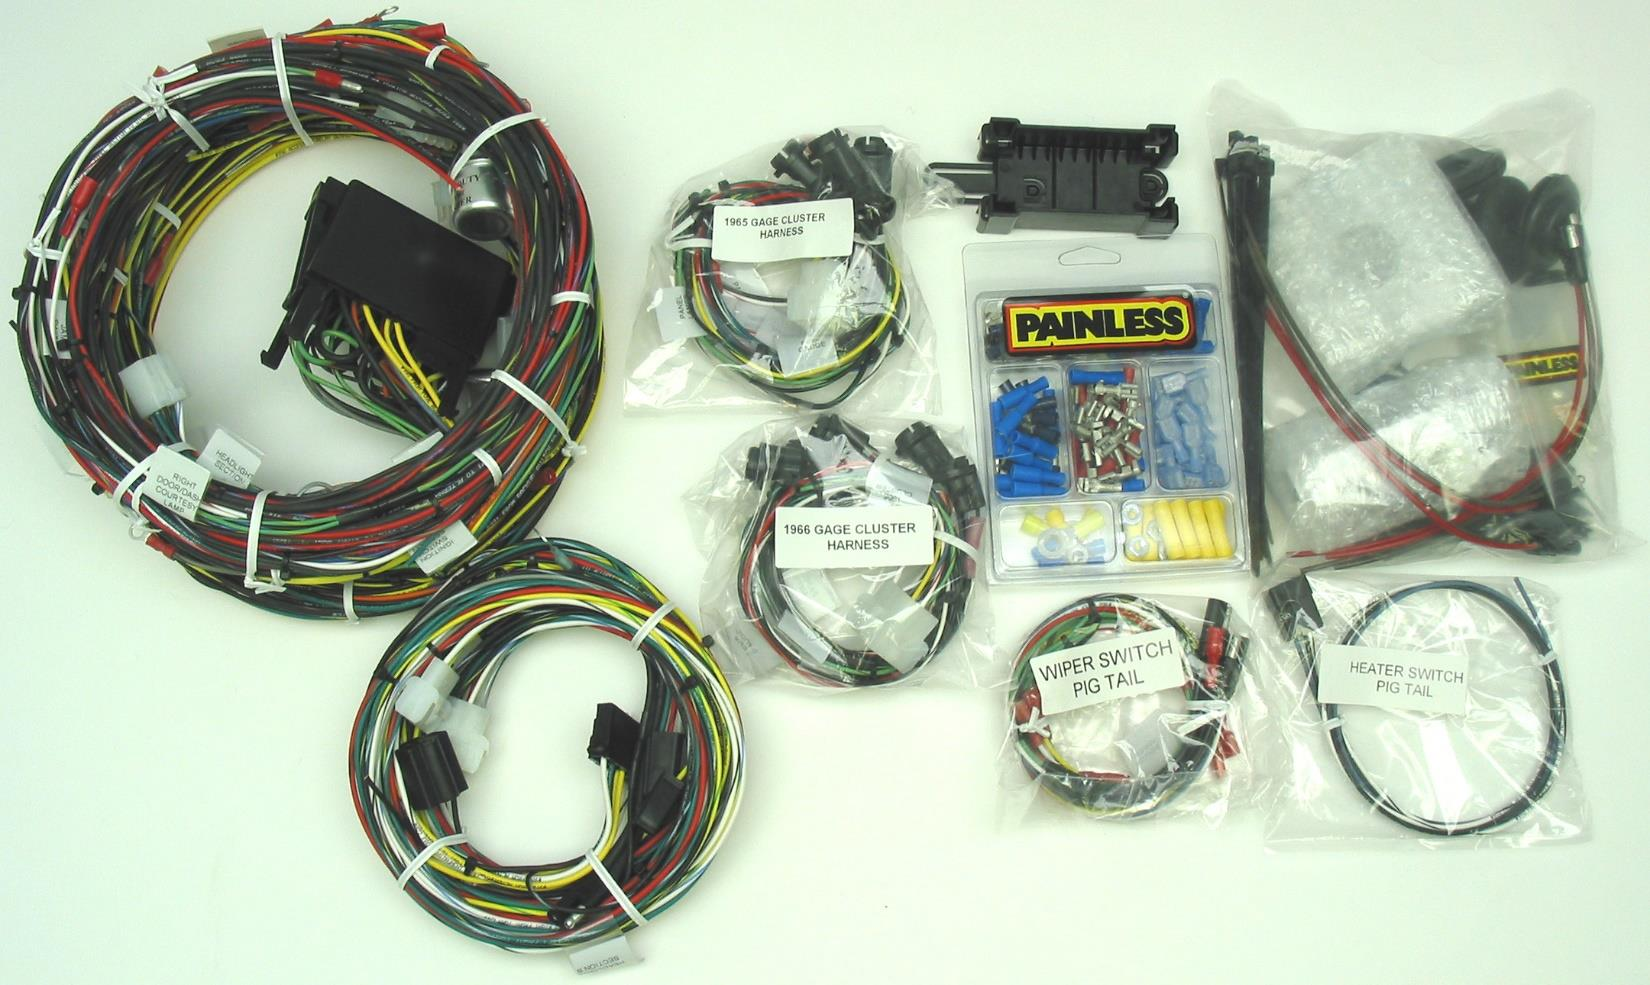 Wire Harness Installation Instructions Pdf Painless Wiring Diagram Panel 6 Bag Kit Containing 3 Types Of Nylon Tie Wraps 10 Instrument Light Bulbs